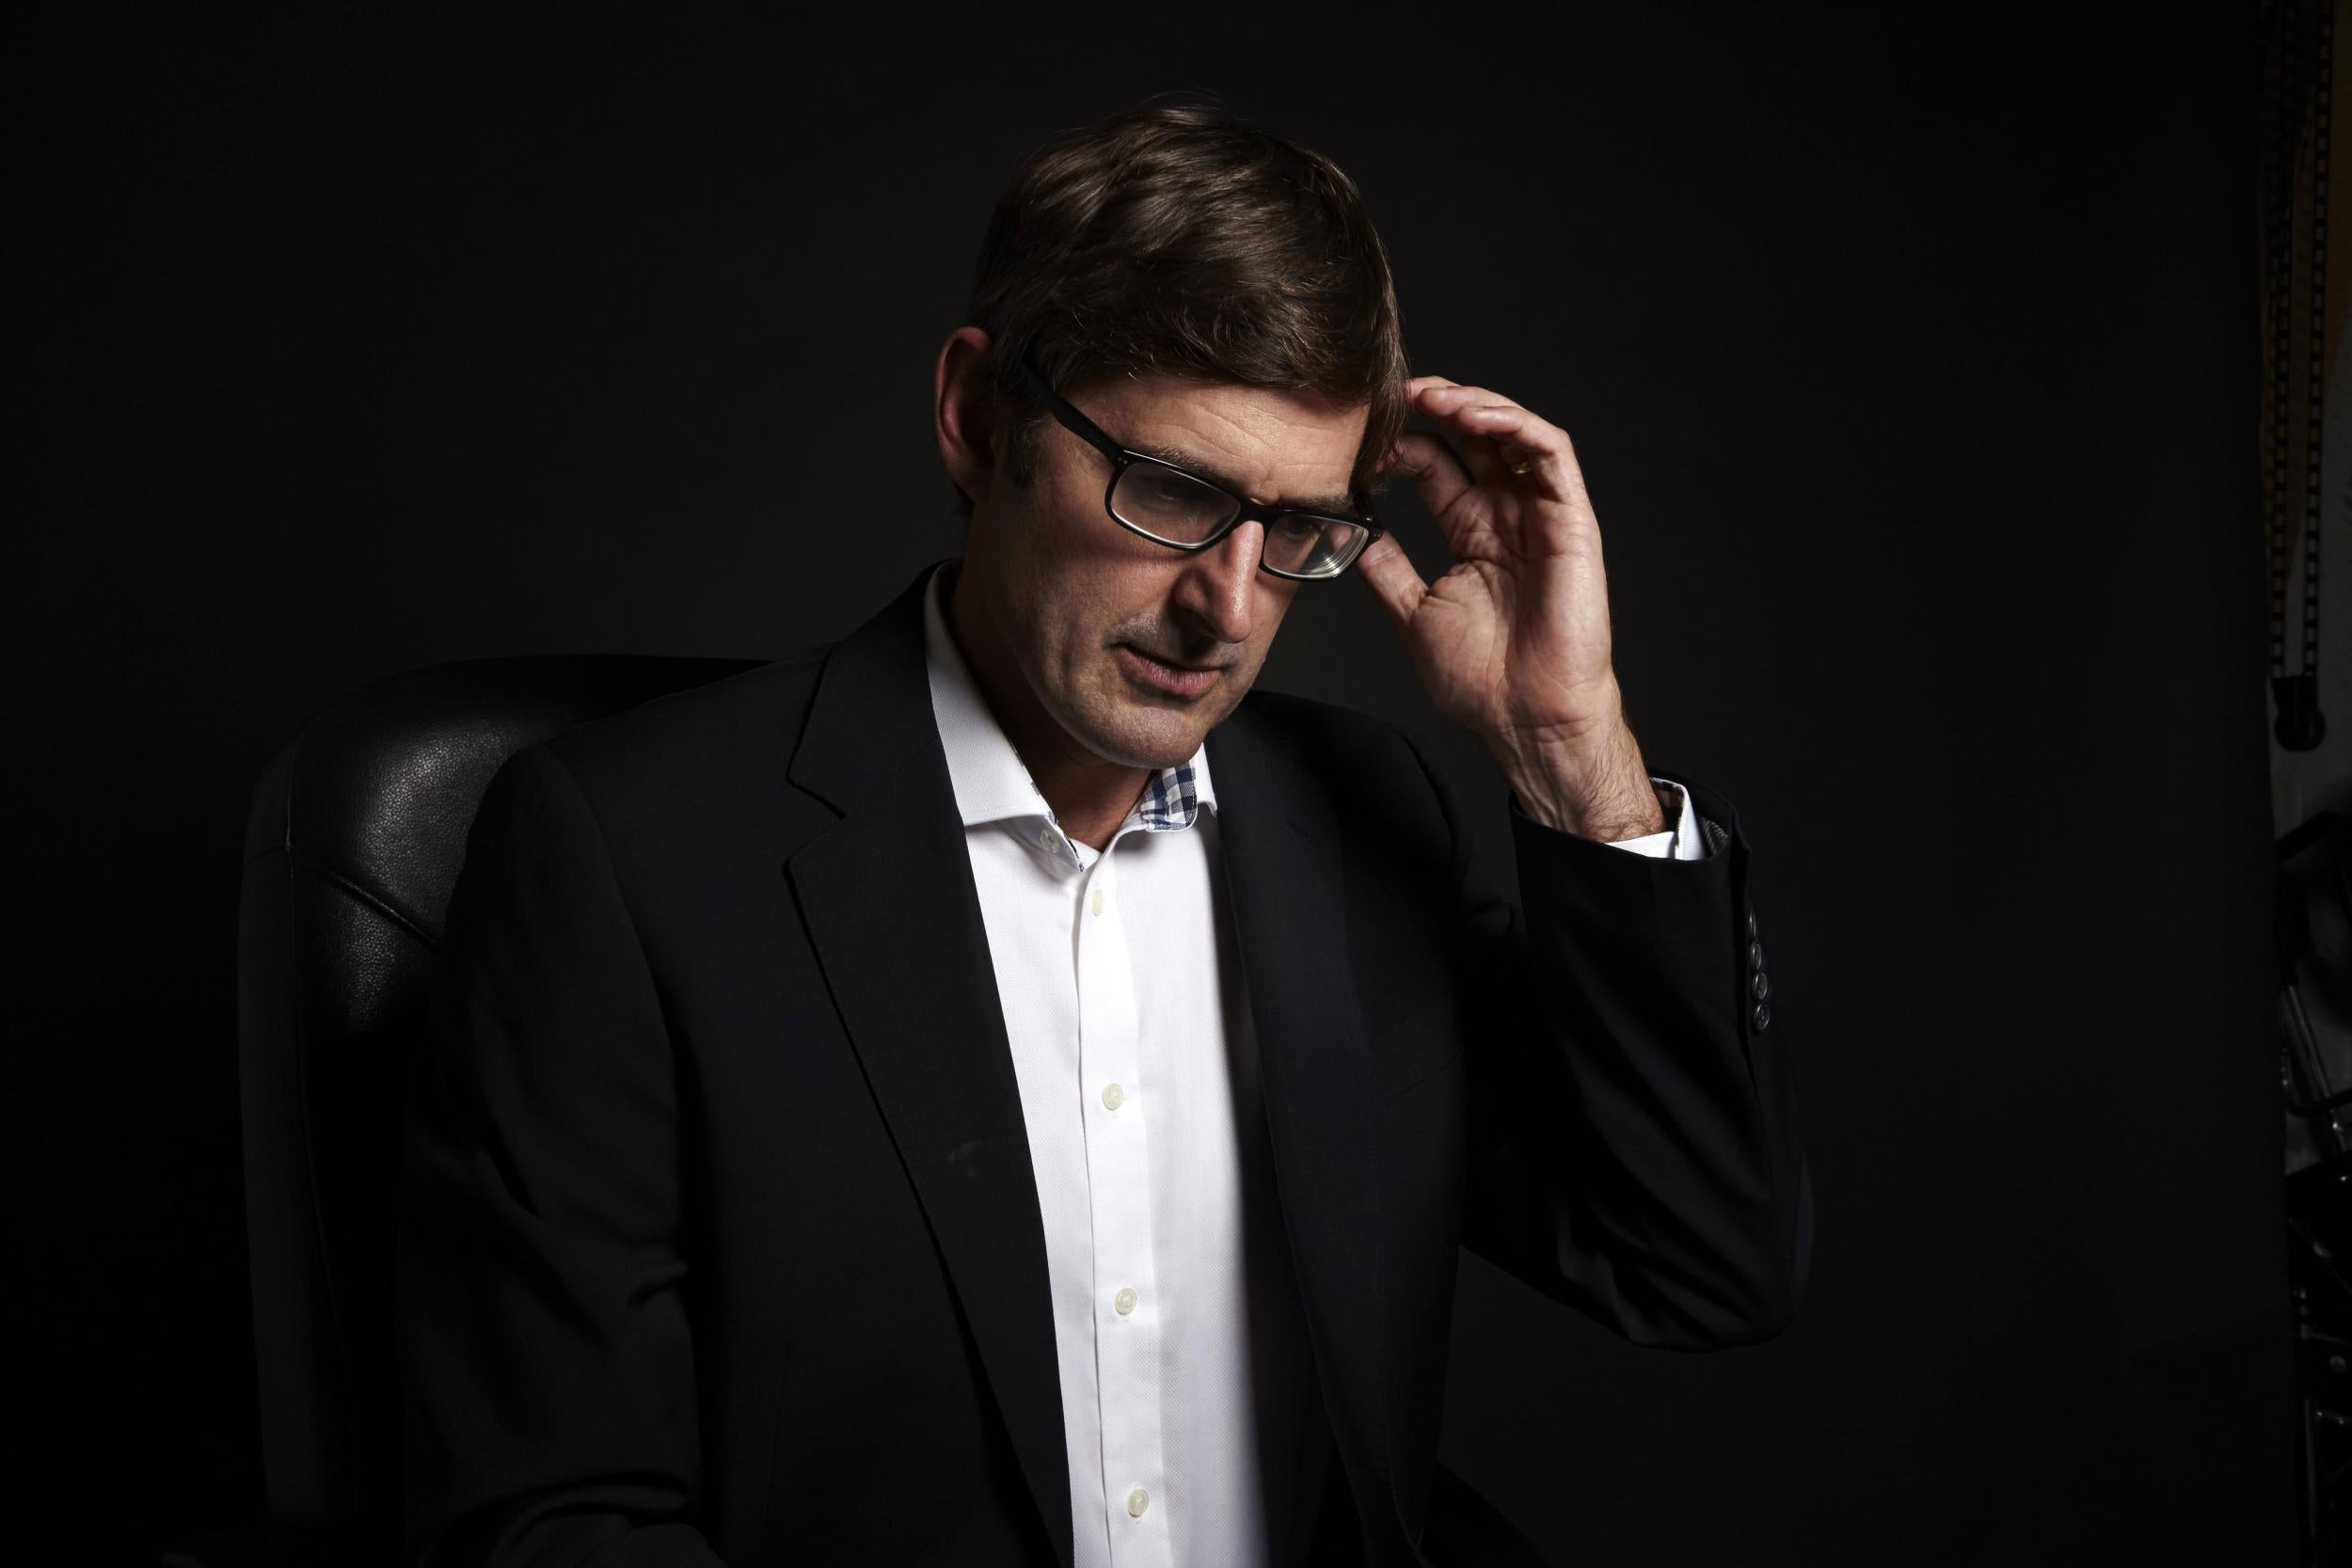 Louis Theroux returning to BBC for three new documentaries tackling murder, sex trafficking, and opiate dependency | The Independent